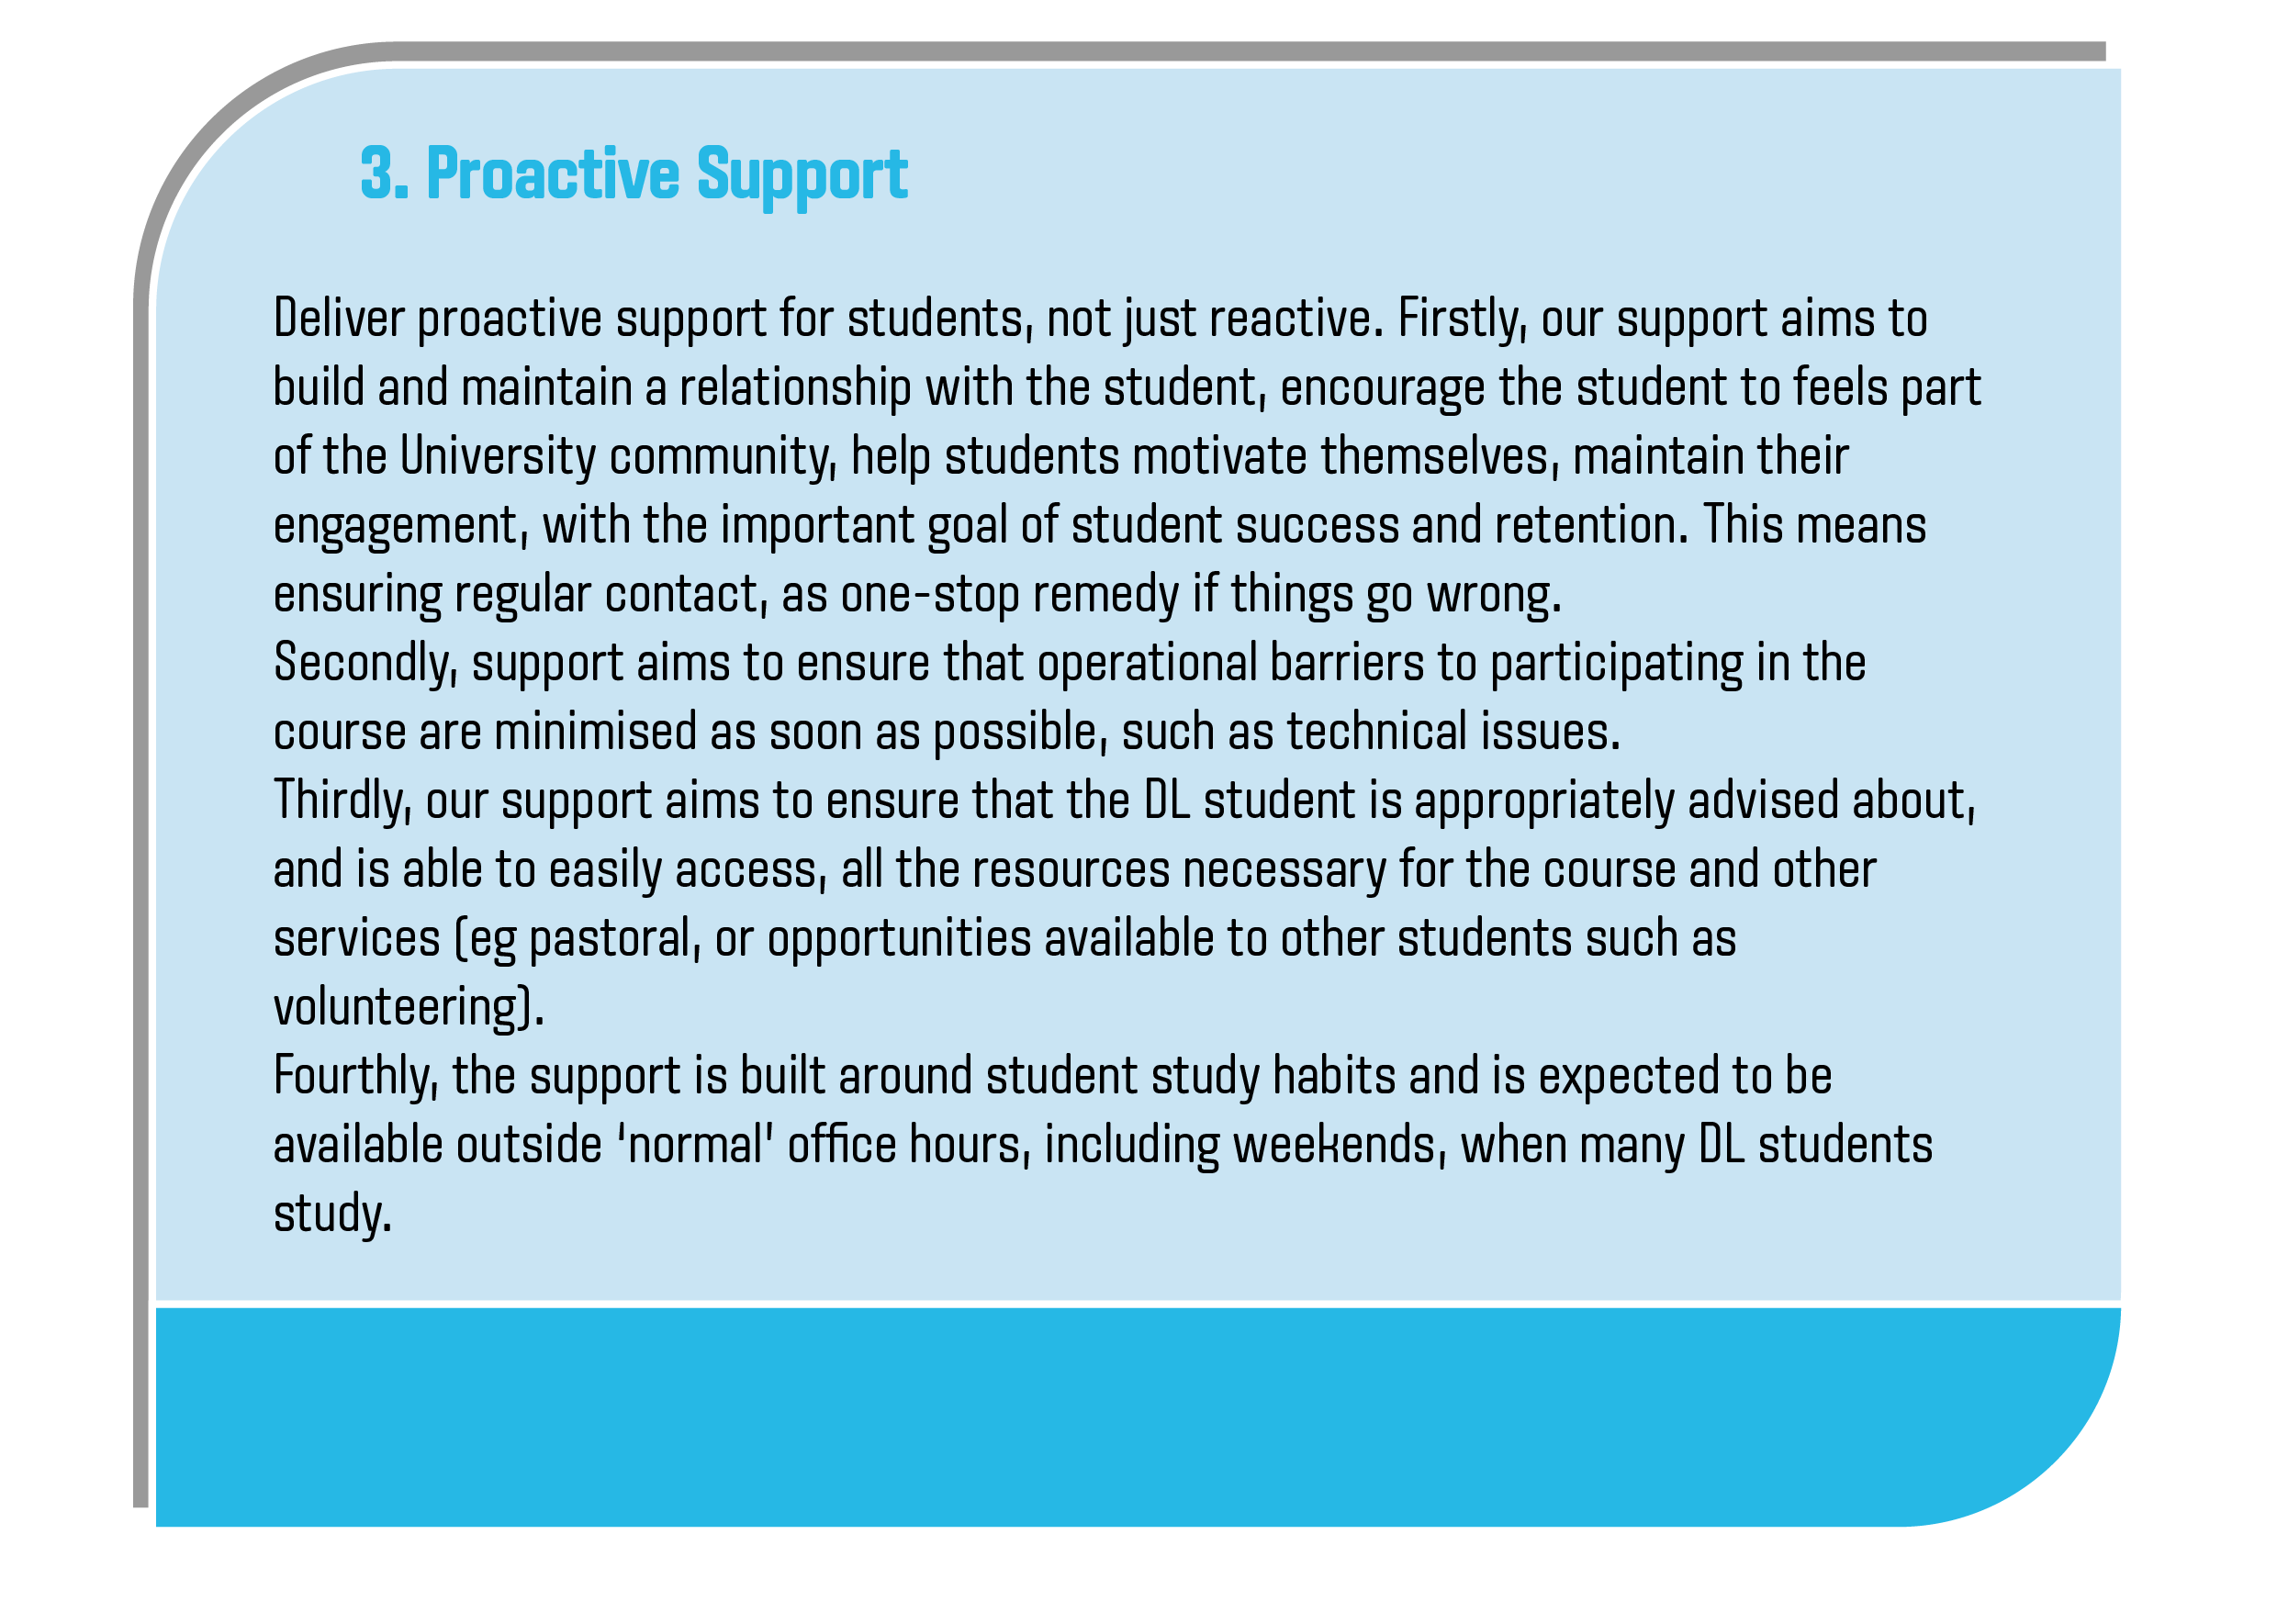 Proactive Support explanation - please see downloadable document for text version